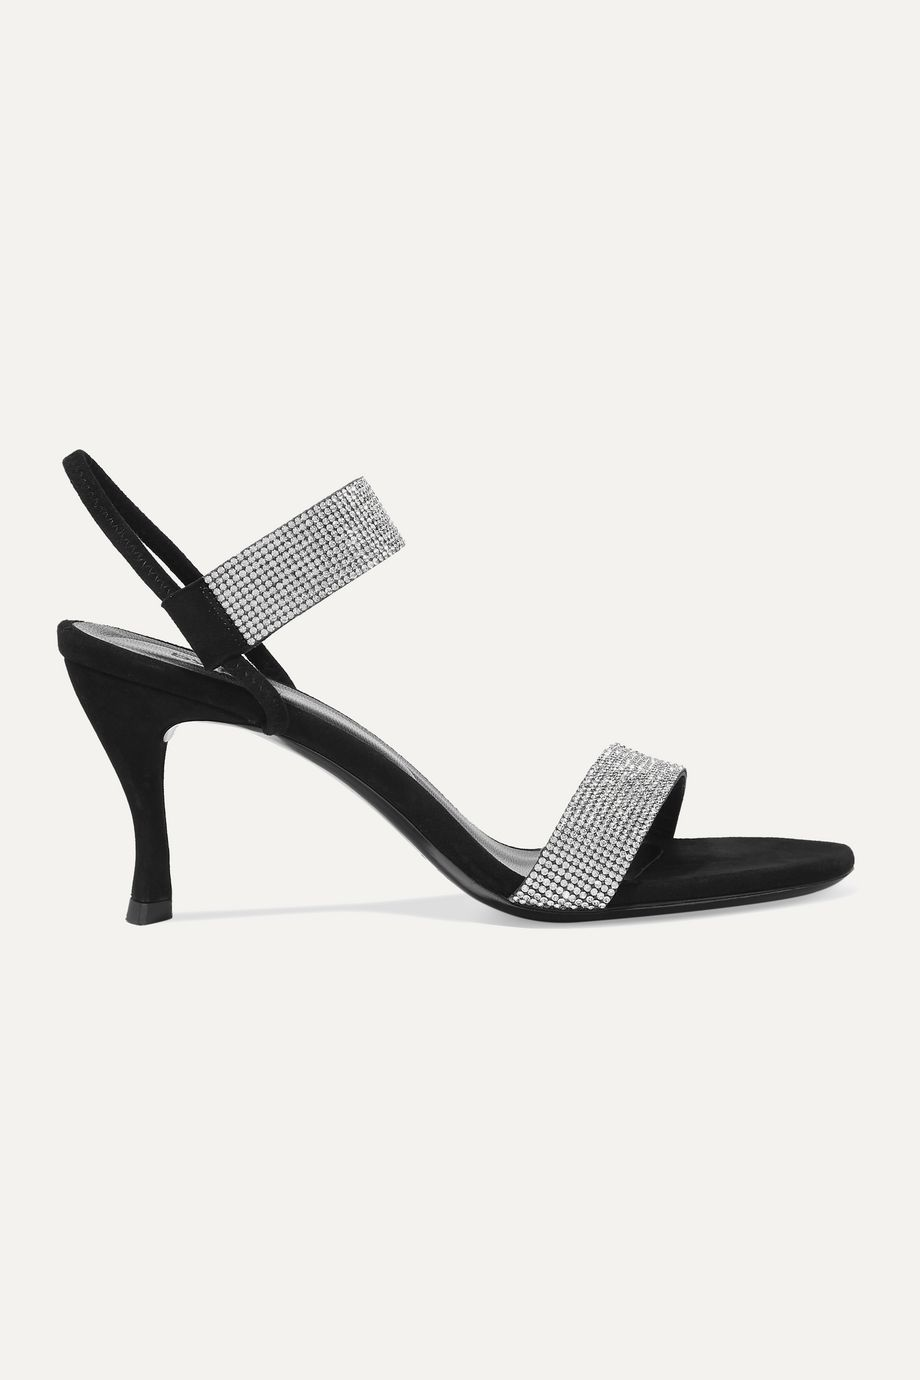 BY FAR Mariah crystal-embellished suede sandals